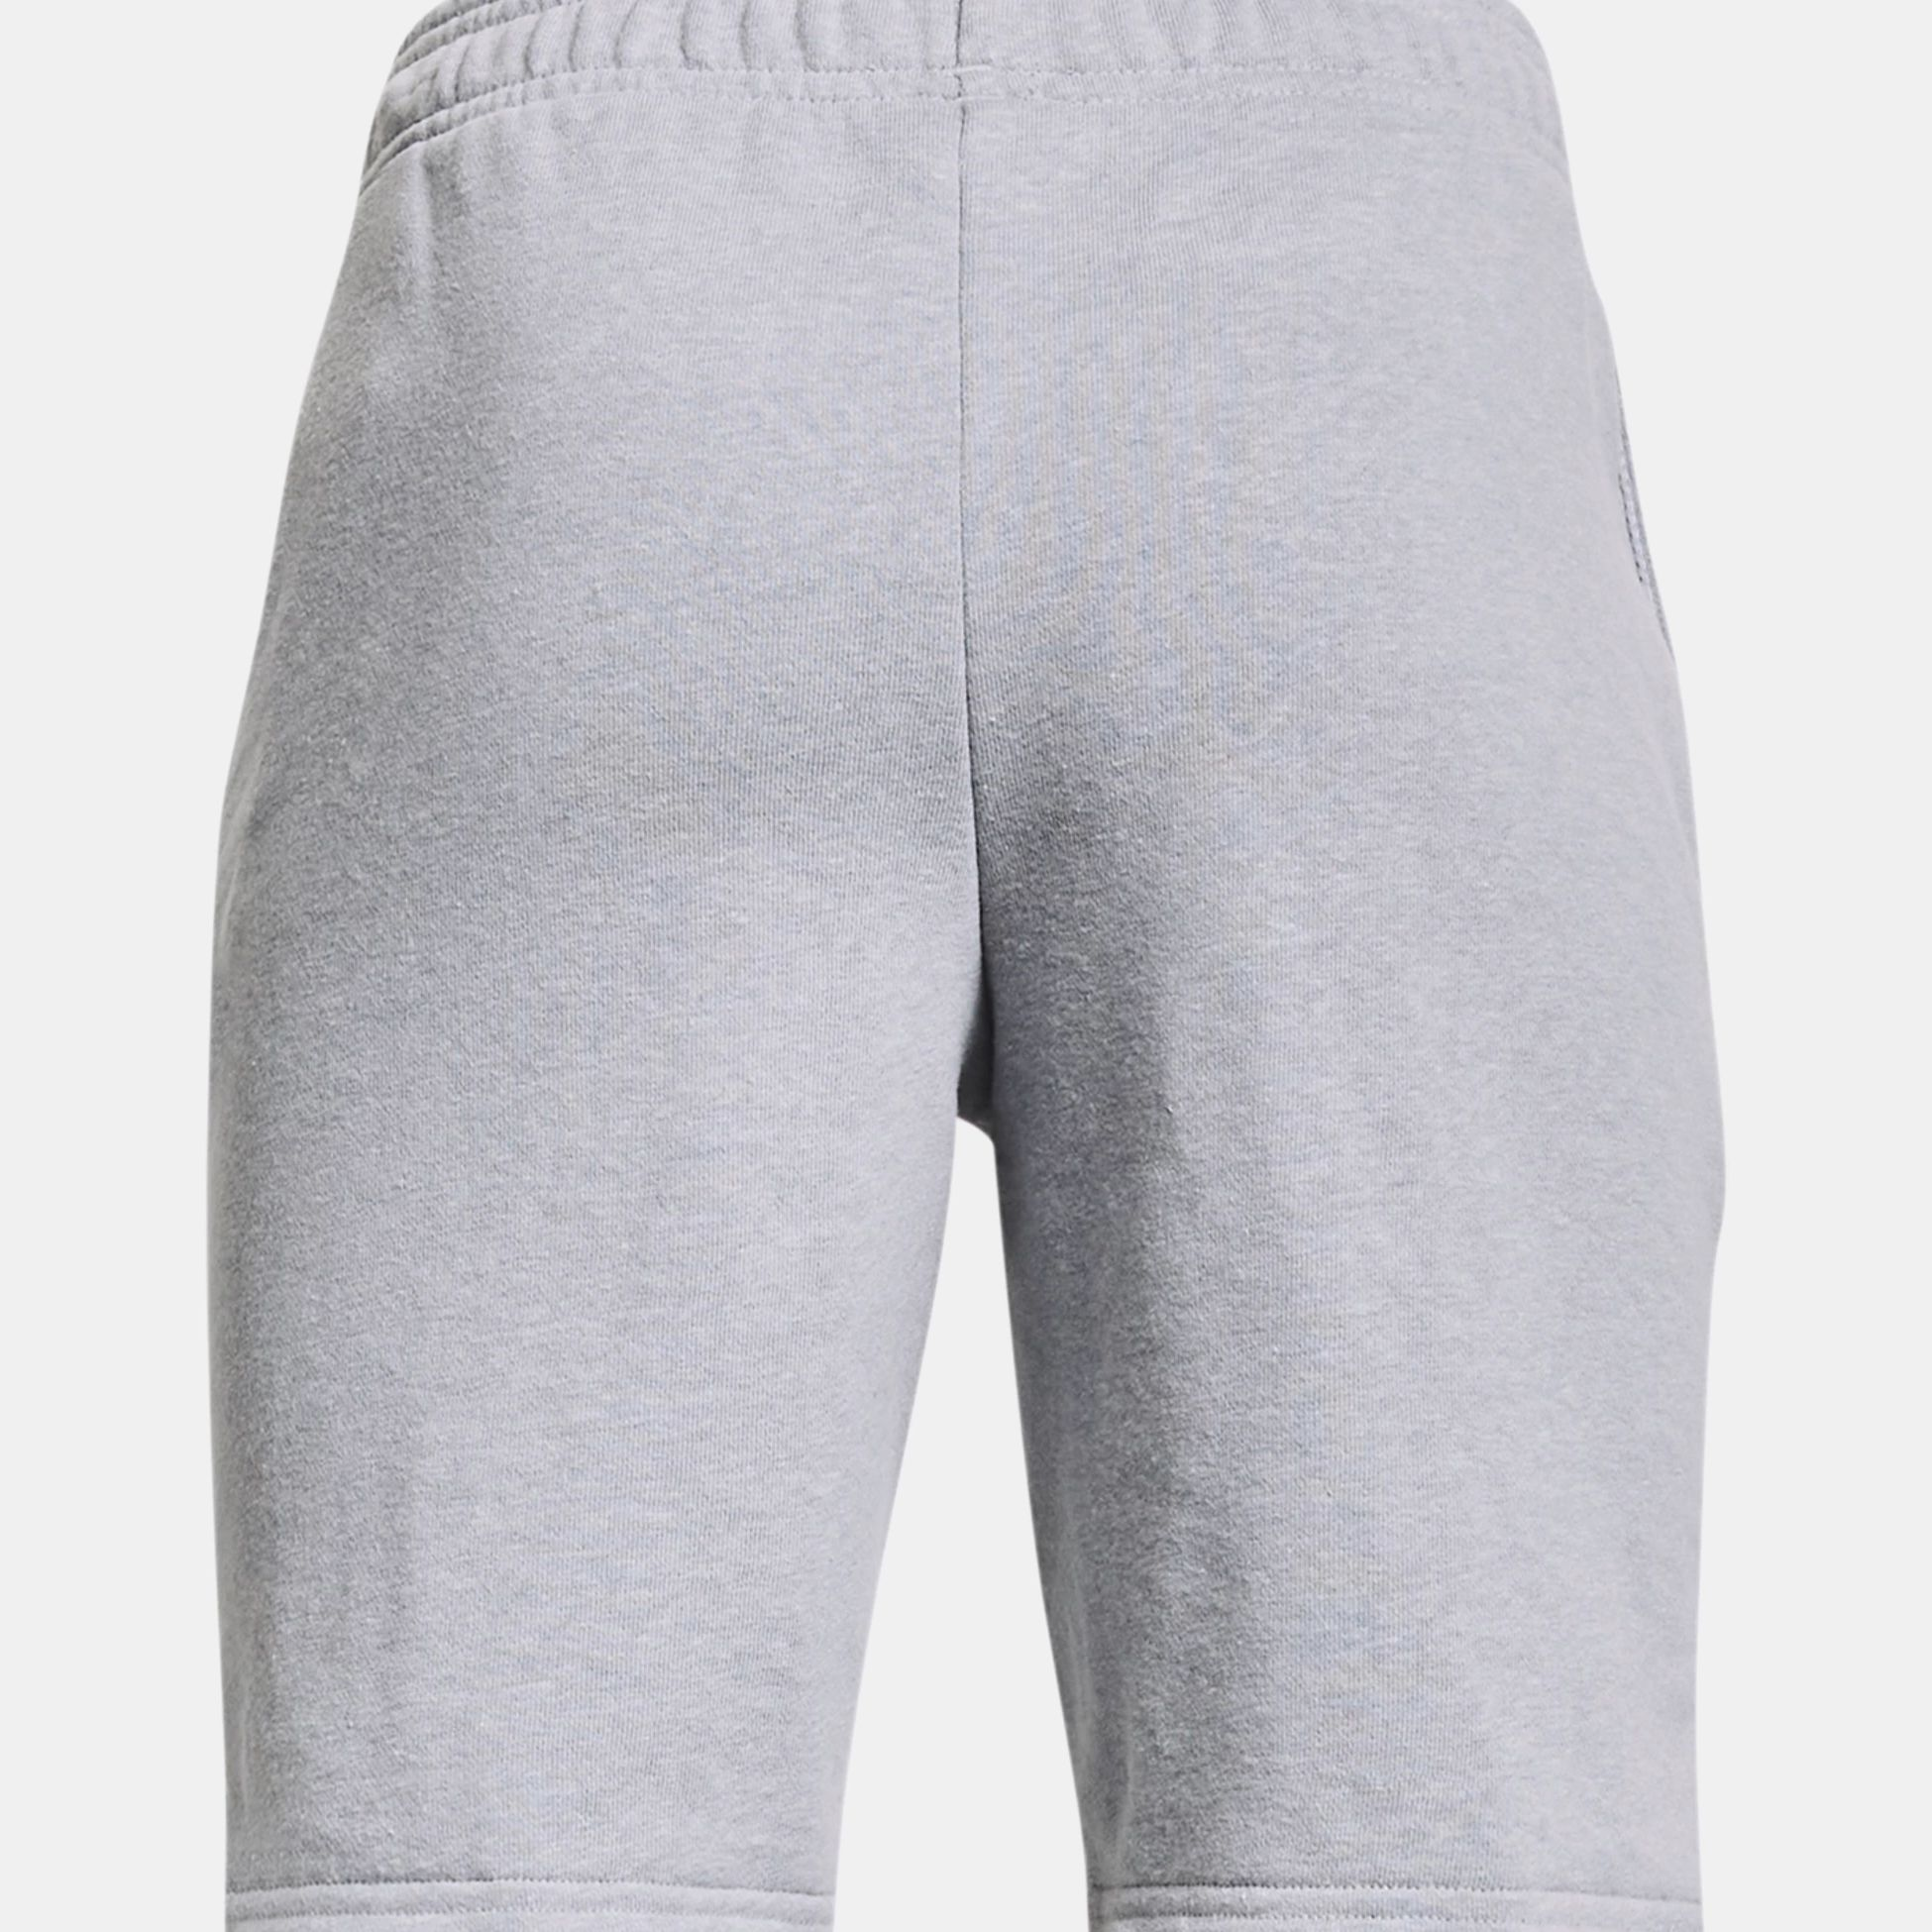 Clothing -  under armour Rival Terry Big Logo Shorts